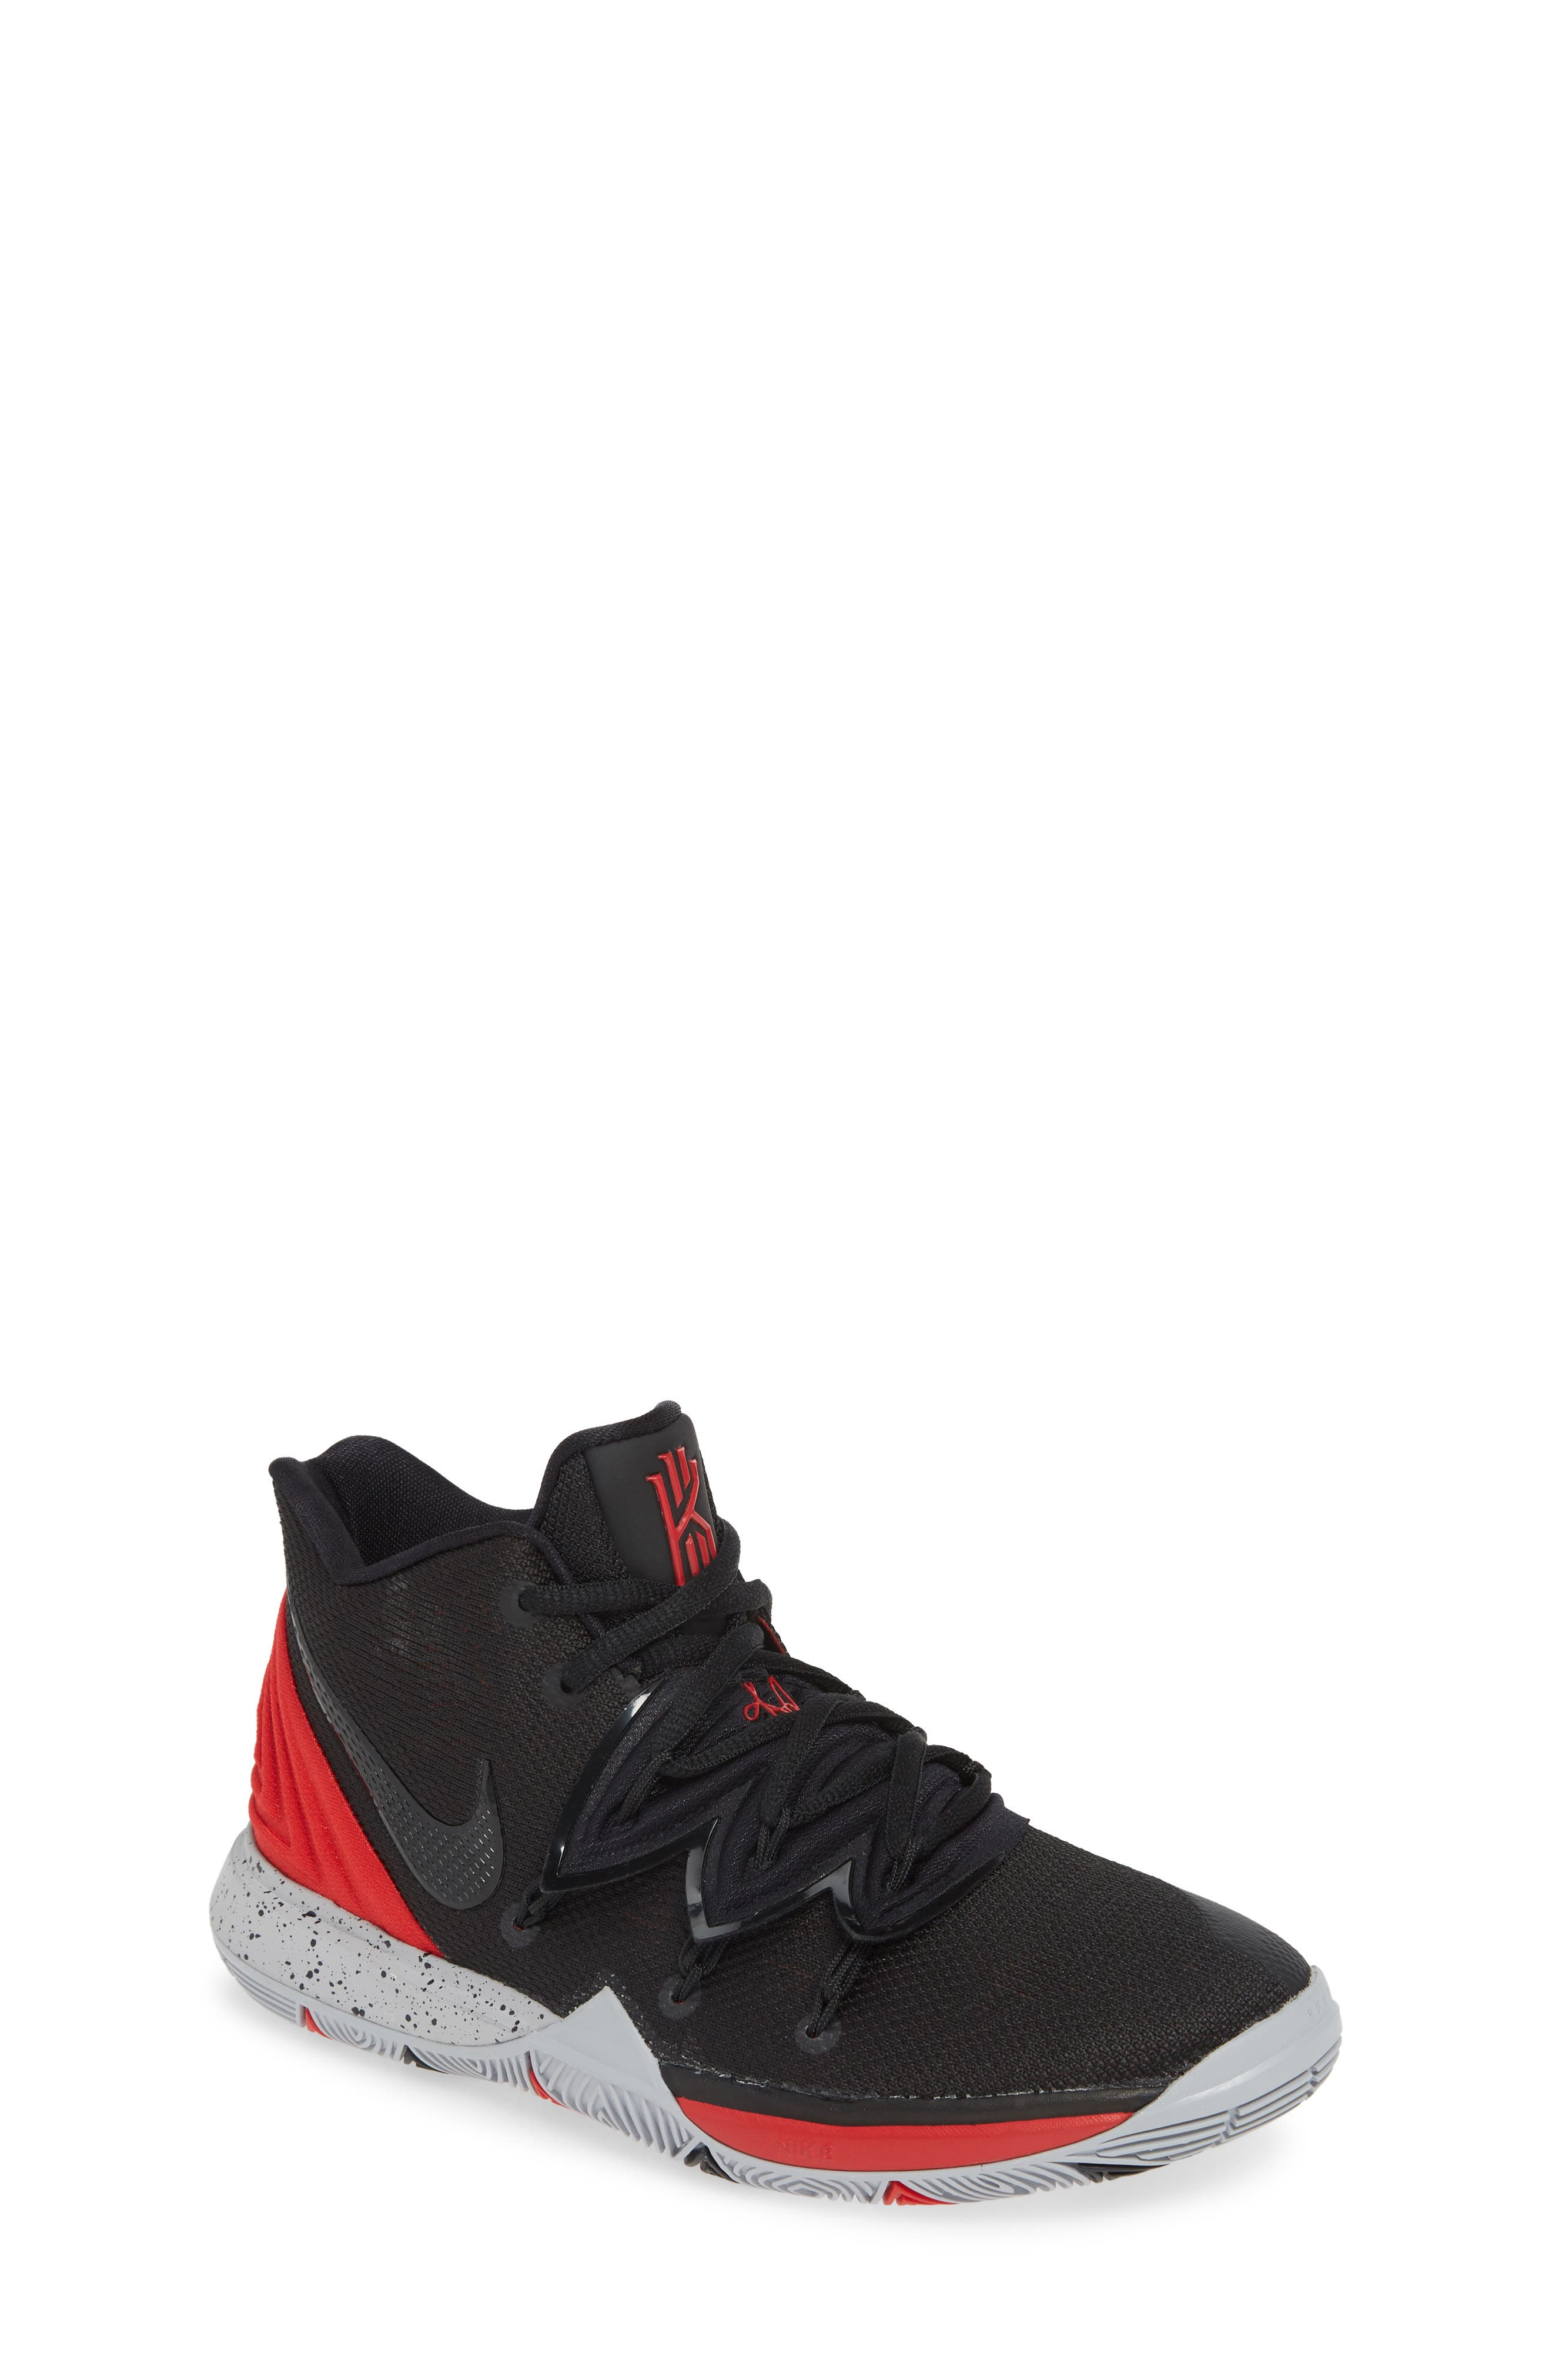 new style 5a282 29aaf Basketball Nike Shoes   Sneakers   Nordstrom